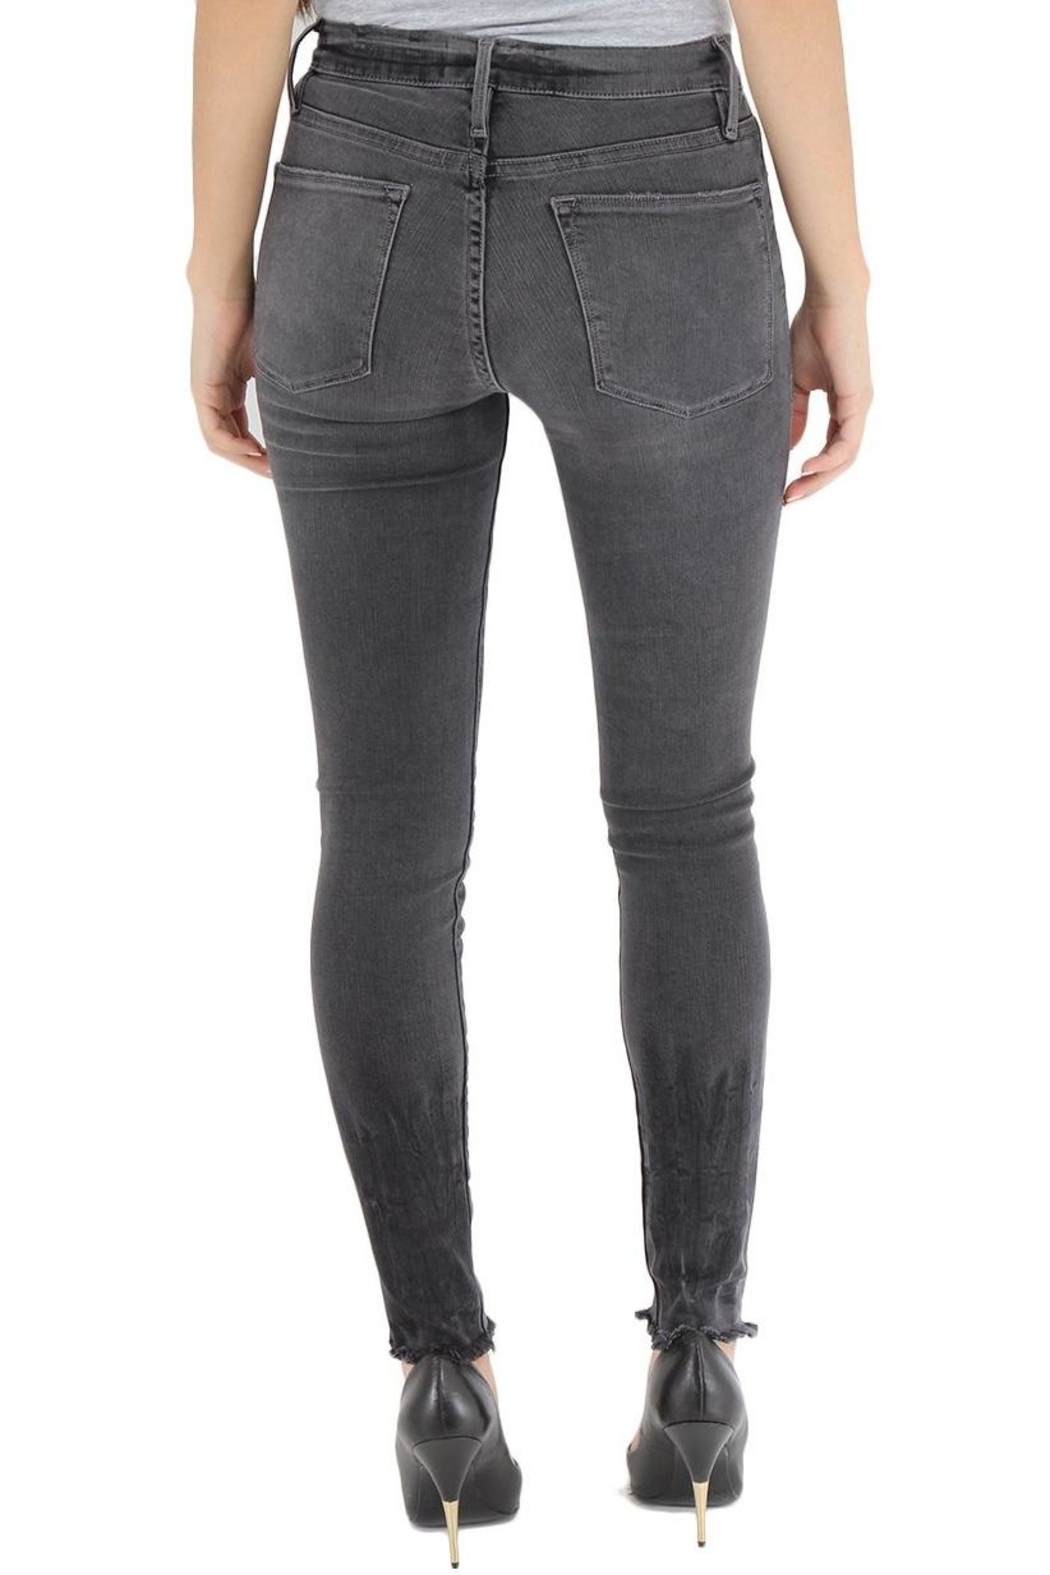 FRAME Denim Skinny Raw Edge from Seattle by Canopy Blue — Shoptiques